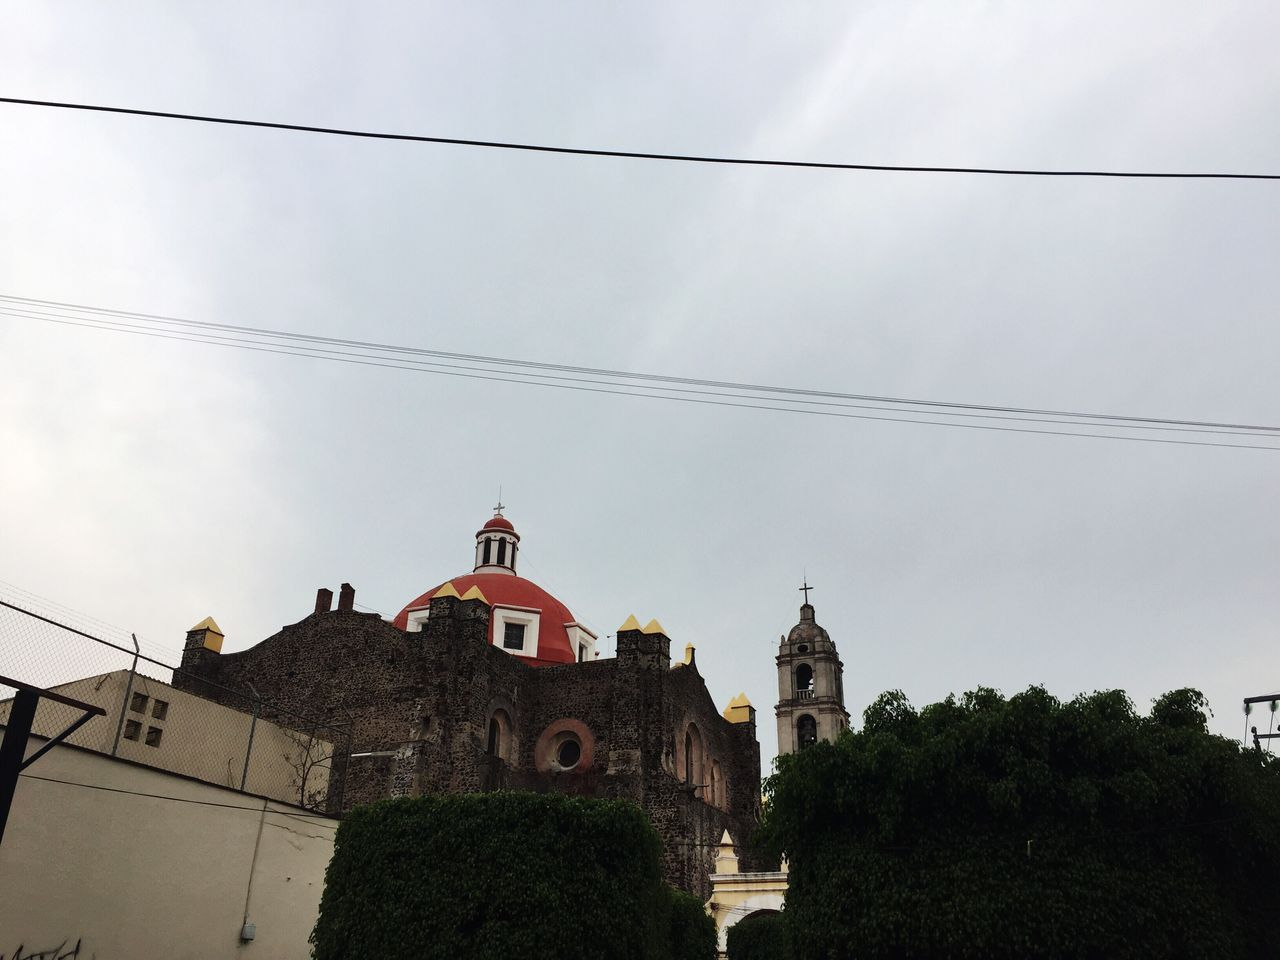 Architecture Built Structure Building Exterior Low Angle View Religion Place Of Worship Sky Spirituality Cable Day Cloud - Sky Outdoors No People Tree Nature Bell Tower Catedral Historical Building City Street Texcoco De Mora